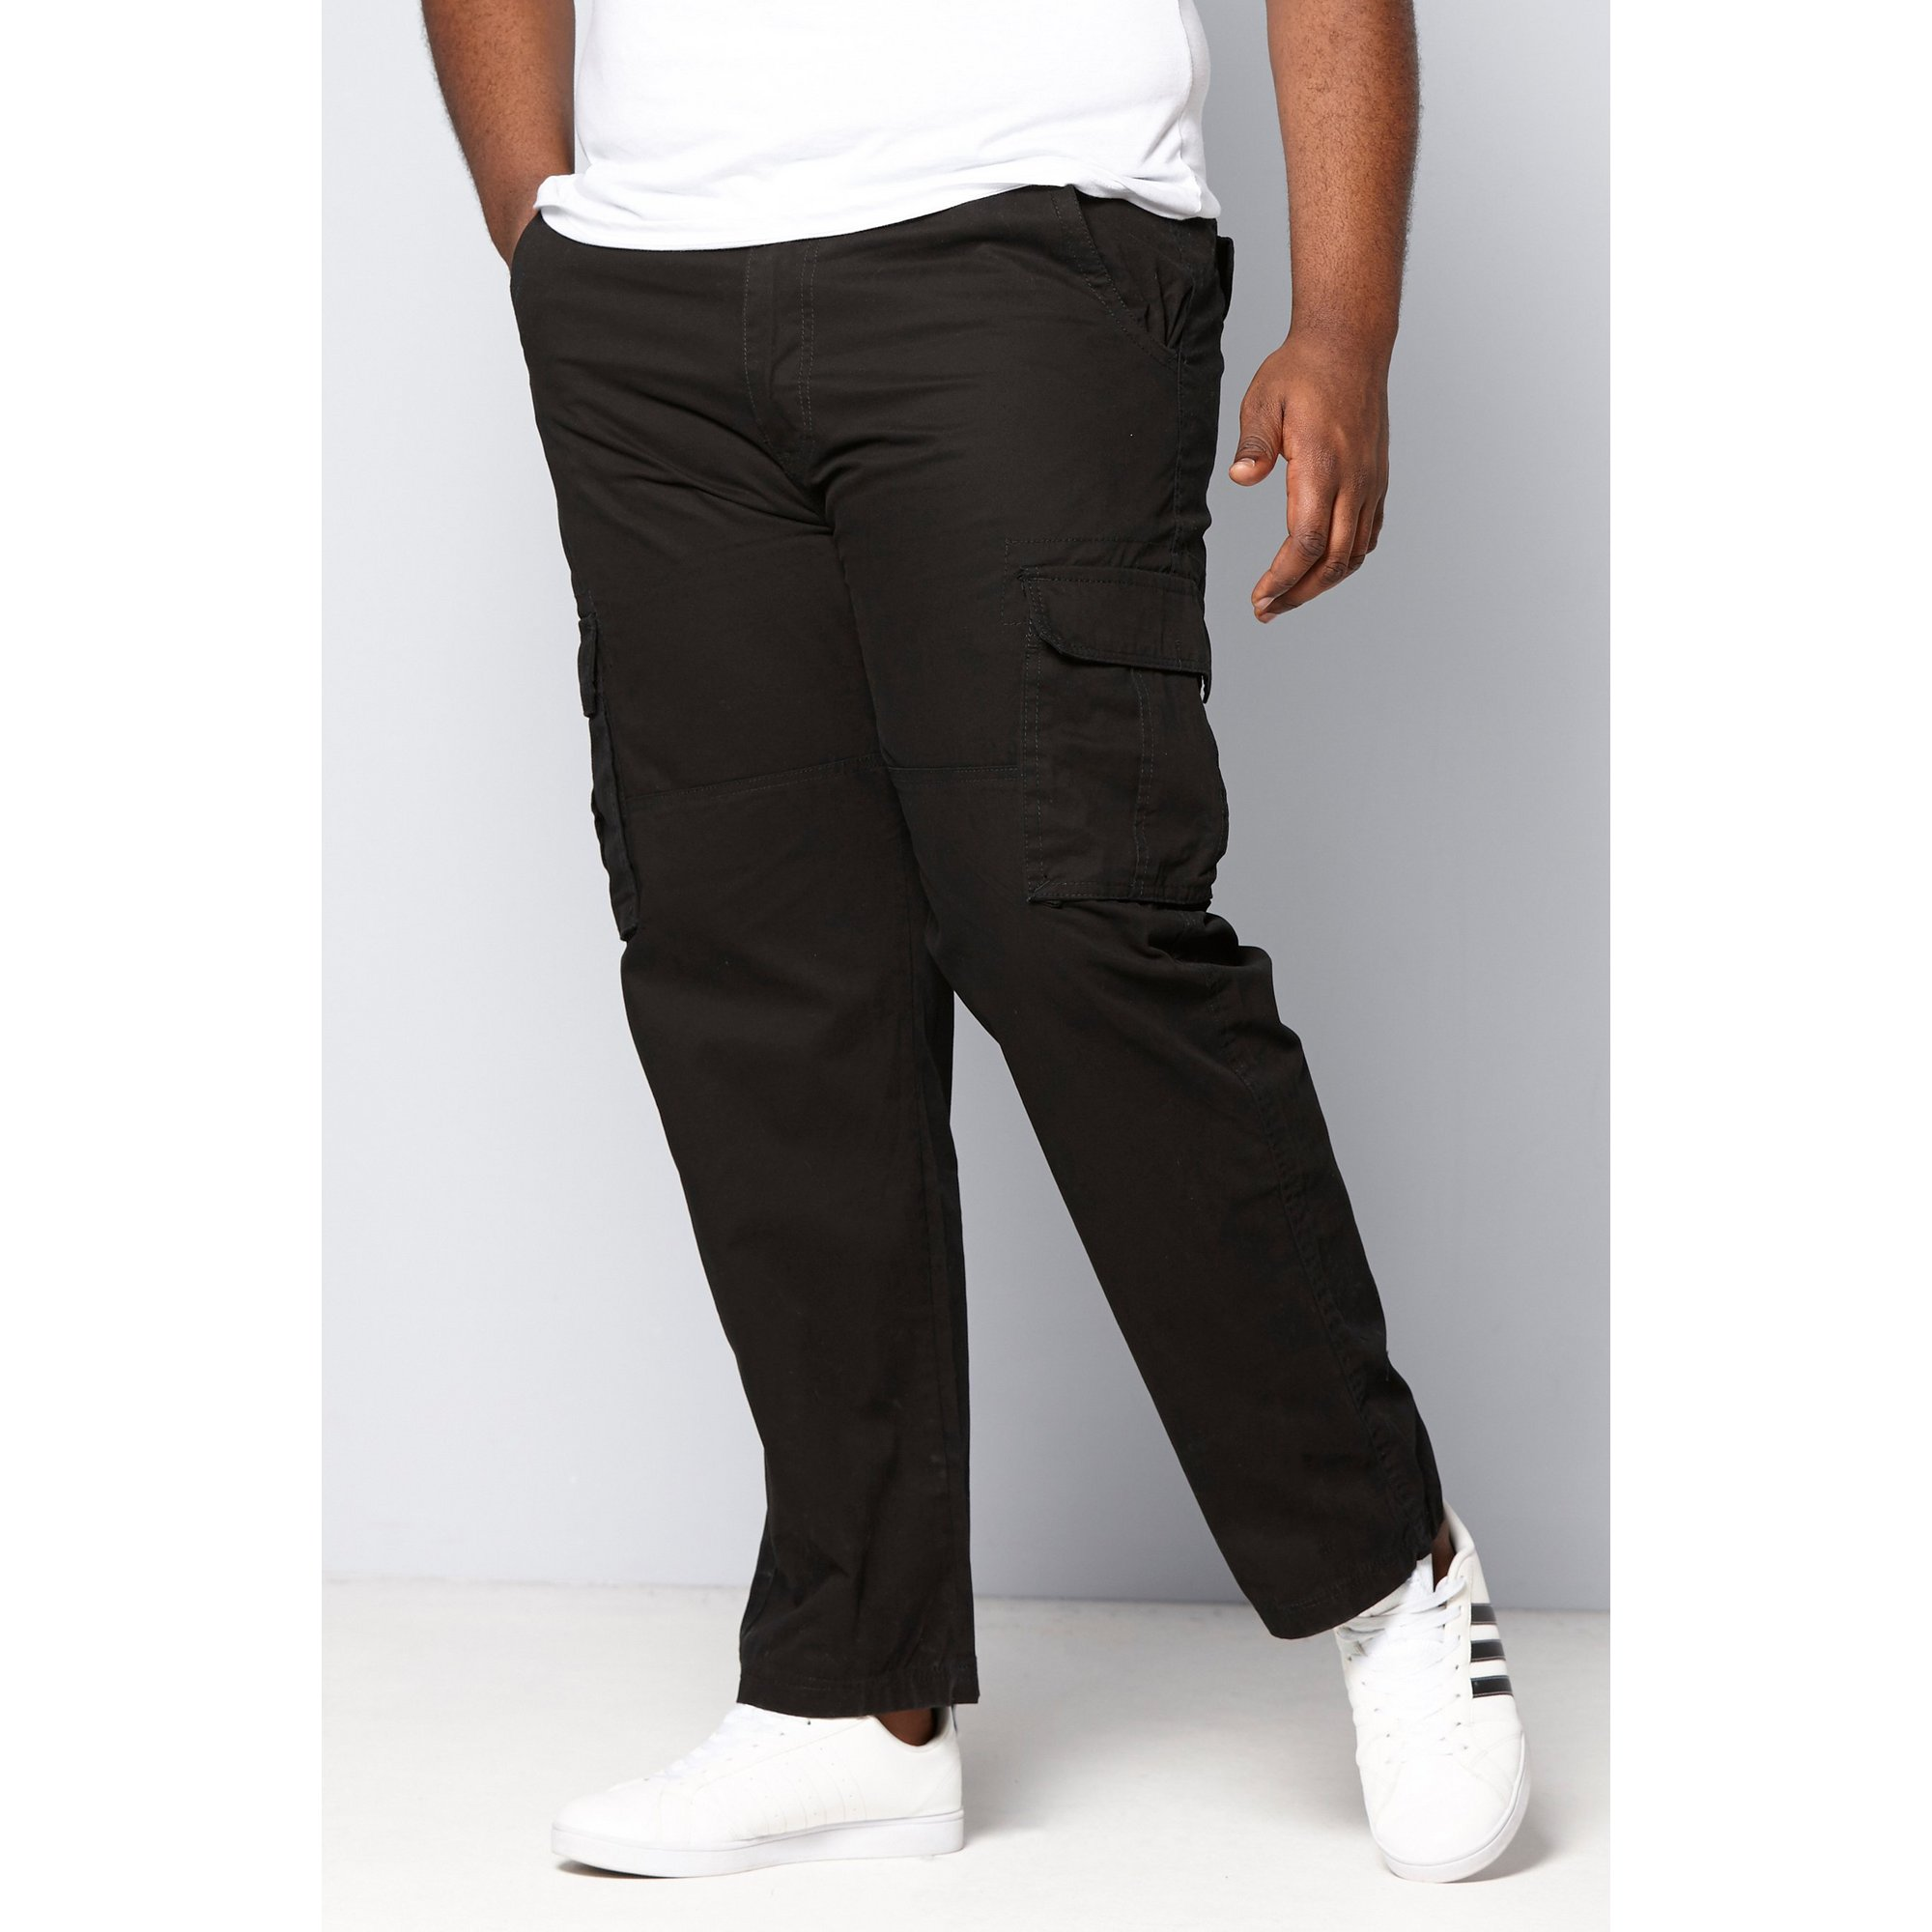 Image of D555 by Duke Big and Tall Black Cargo Trousers